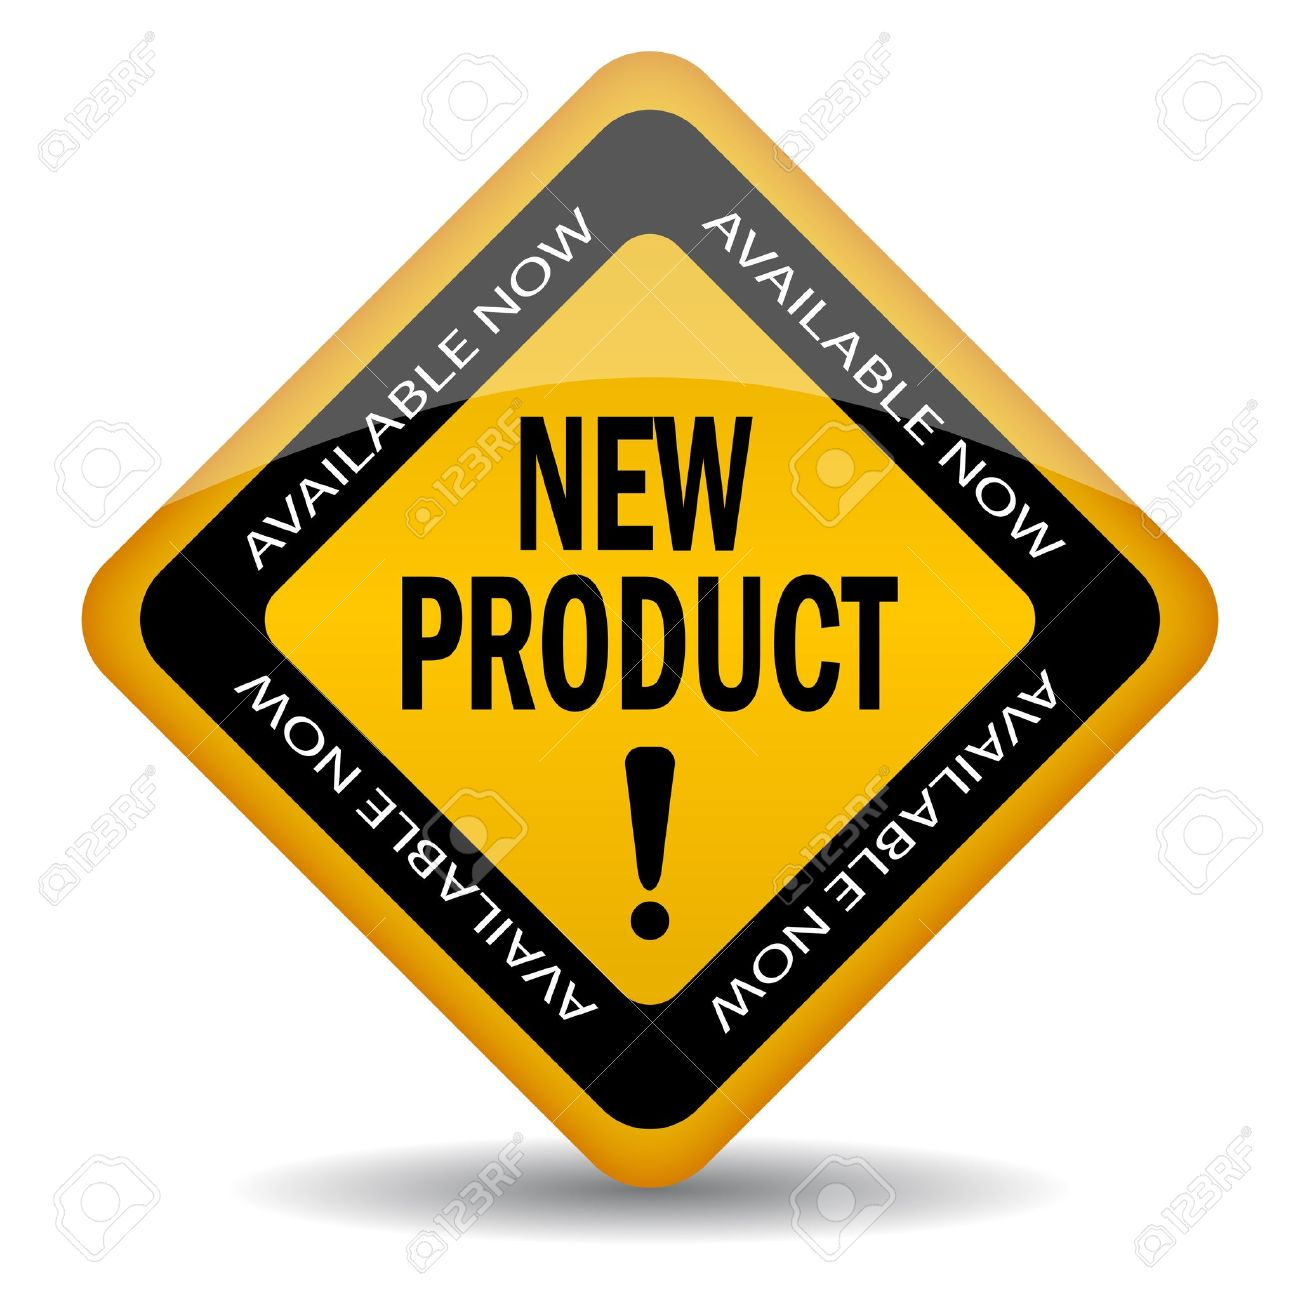 New product sign, vector illustration - 10856766